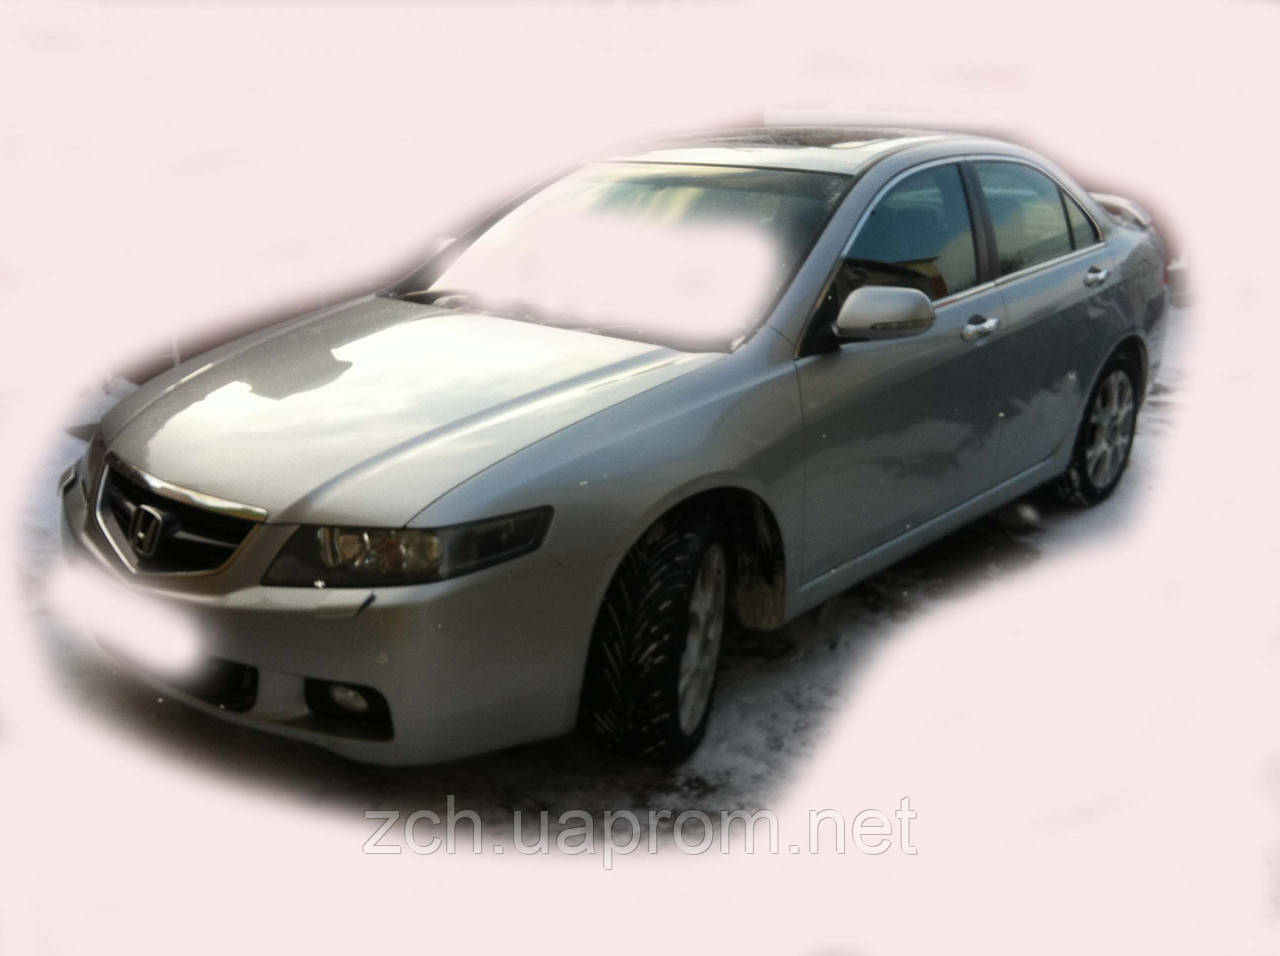 Балка мотора 2.0 и 2.4 Honda Accord